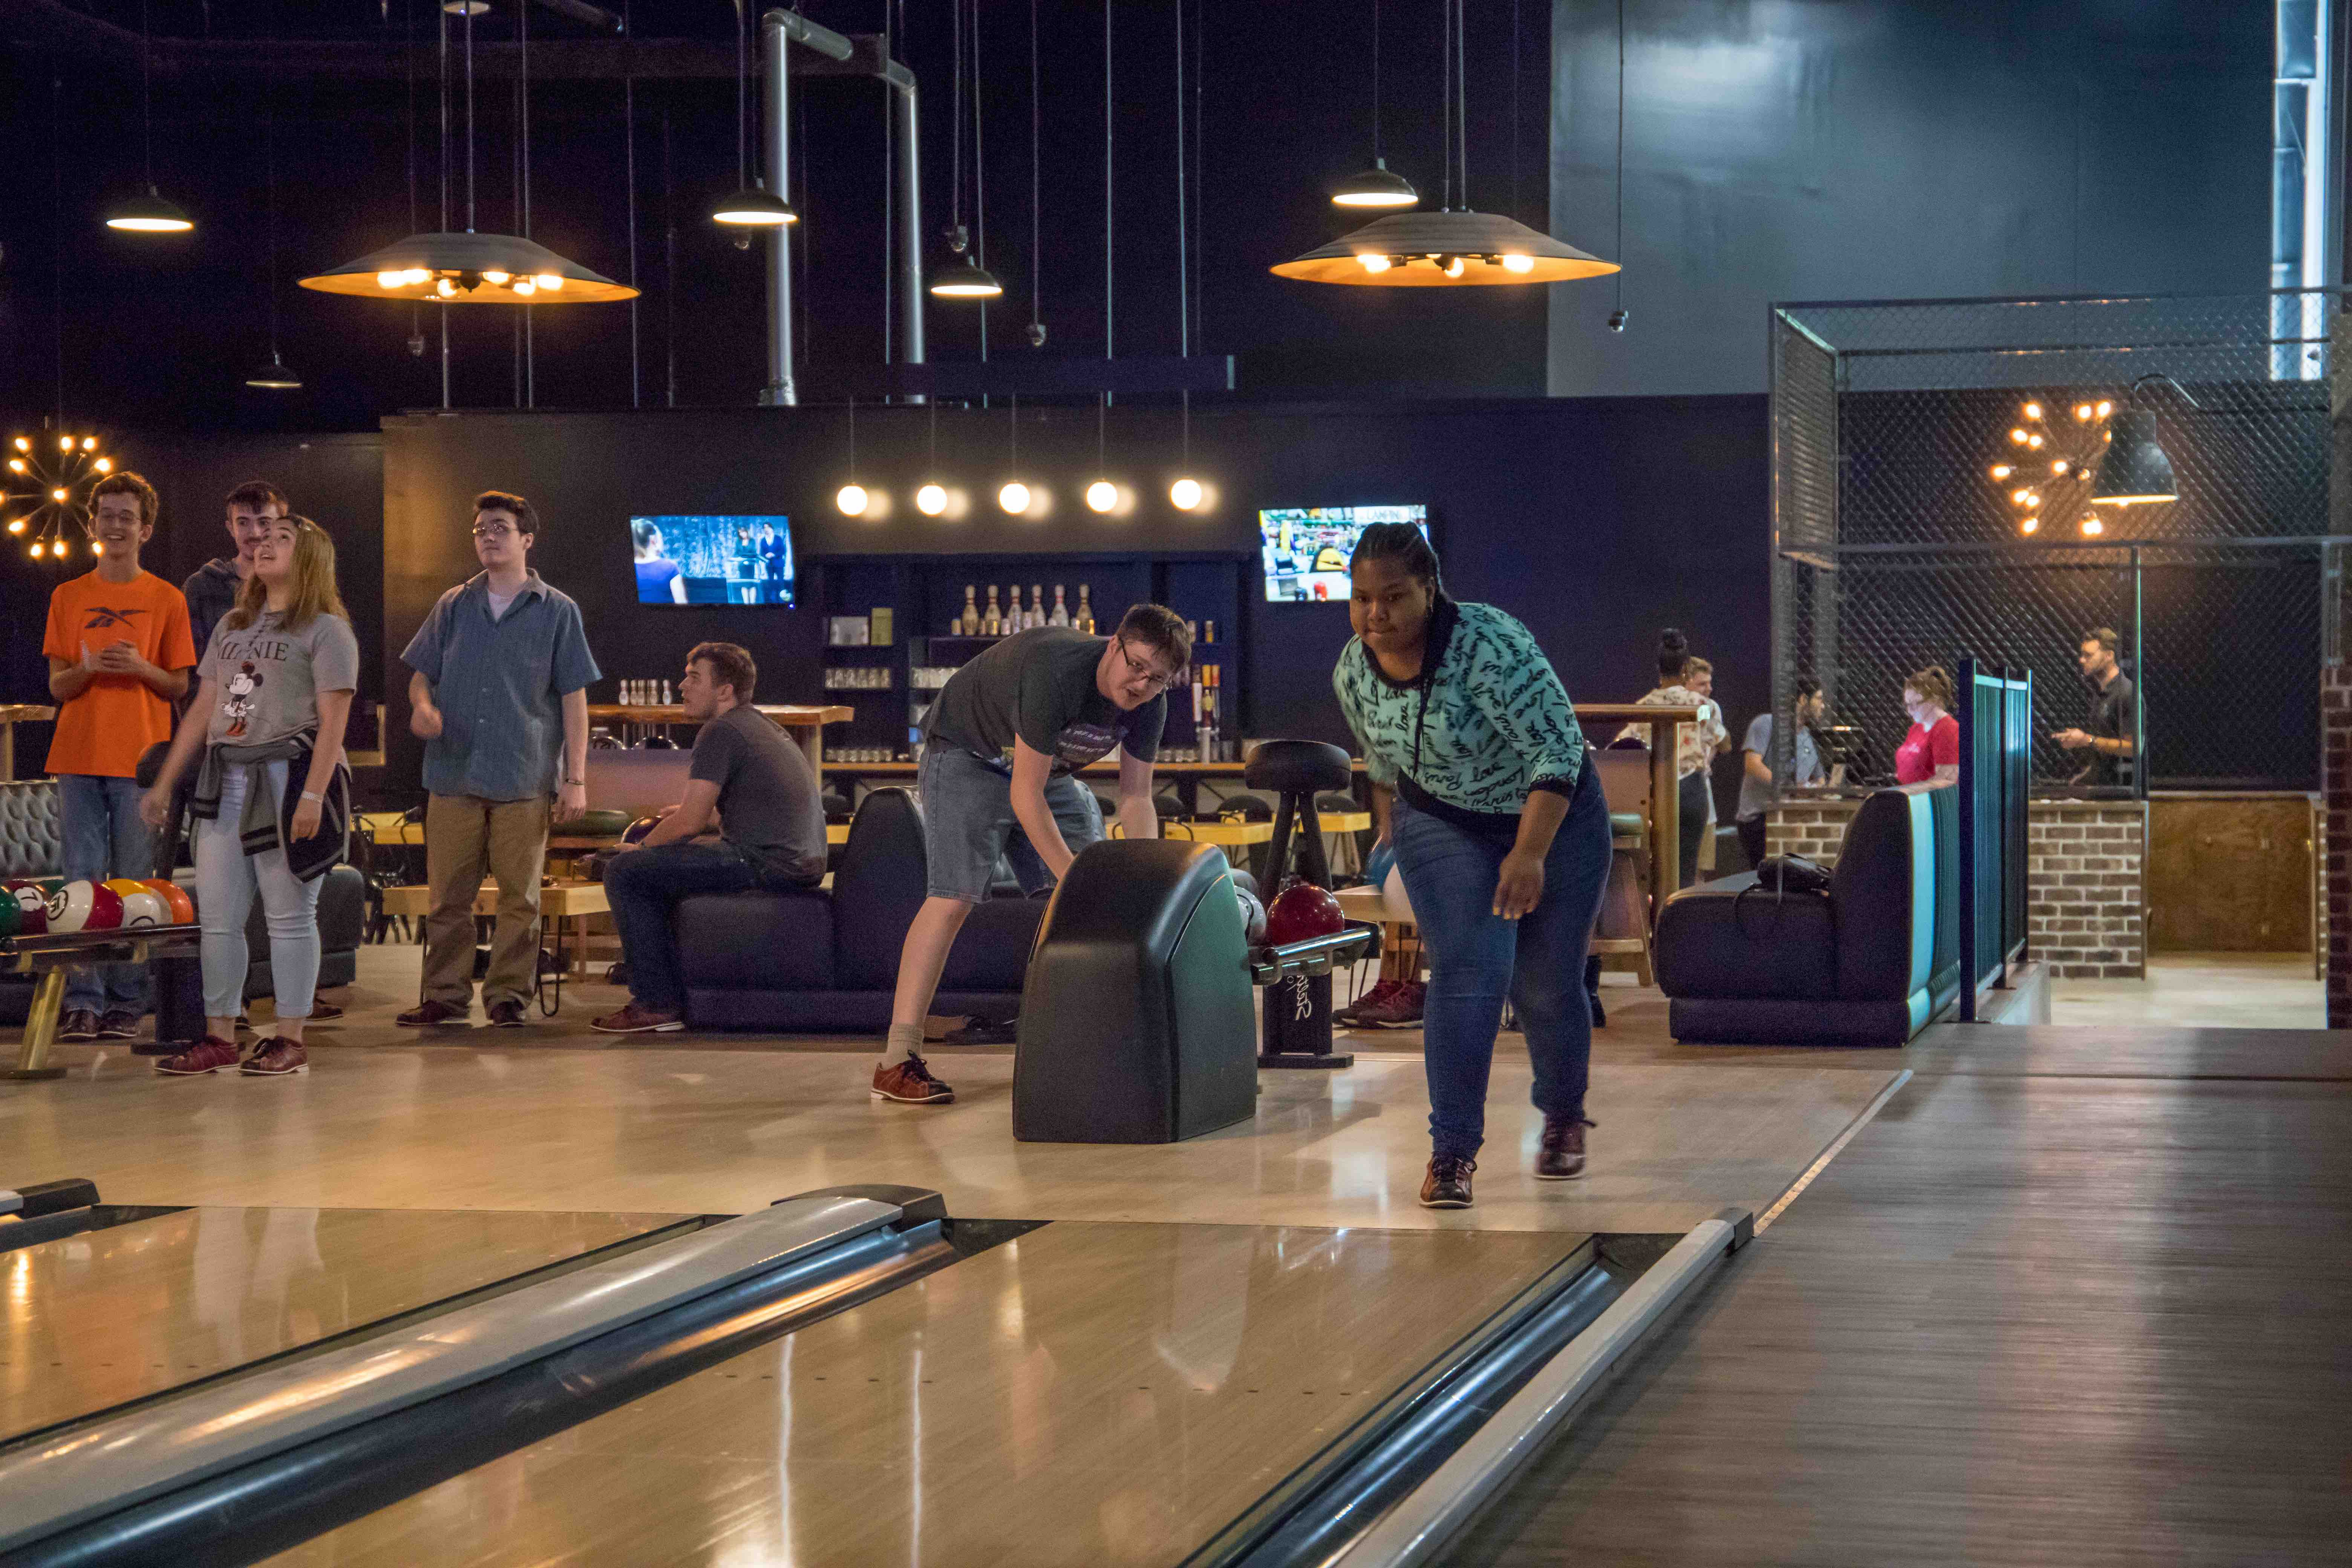 Bowling at the city Forum